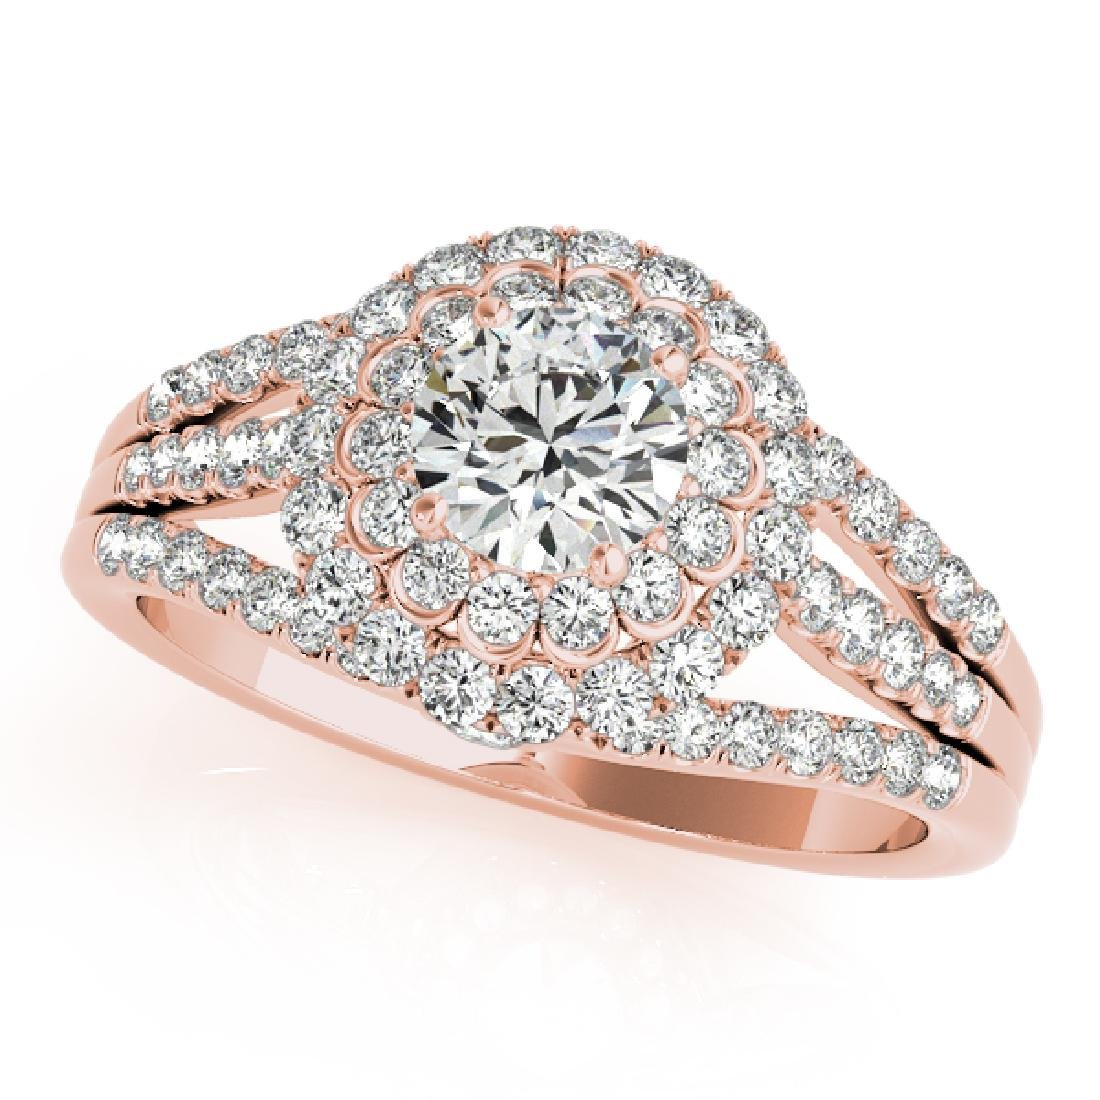 CERTIFIED 18K ROSE GOLD 1.61 CT G-H/VS-SI1 DIAMOND HALO